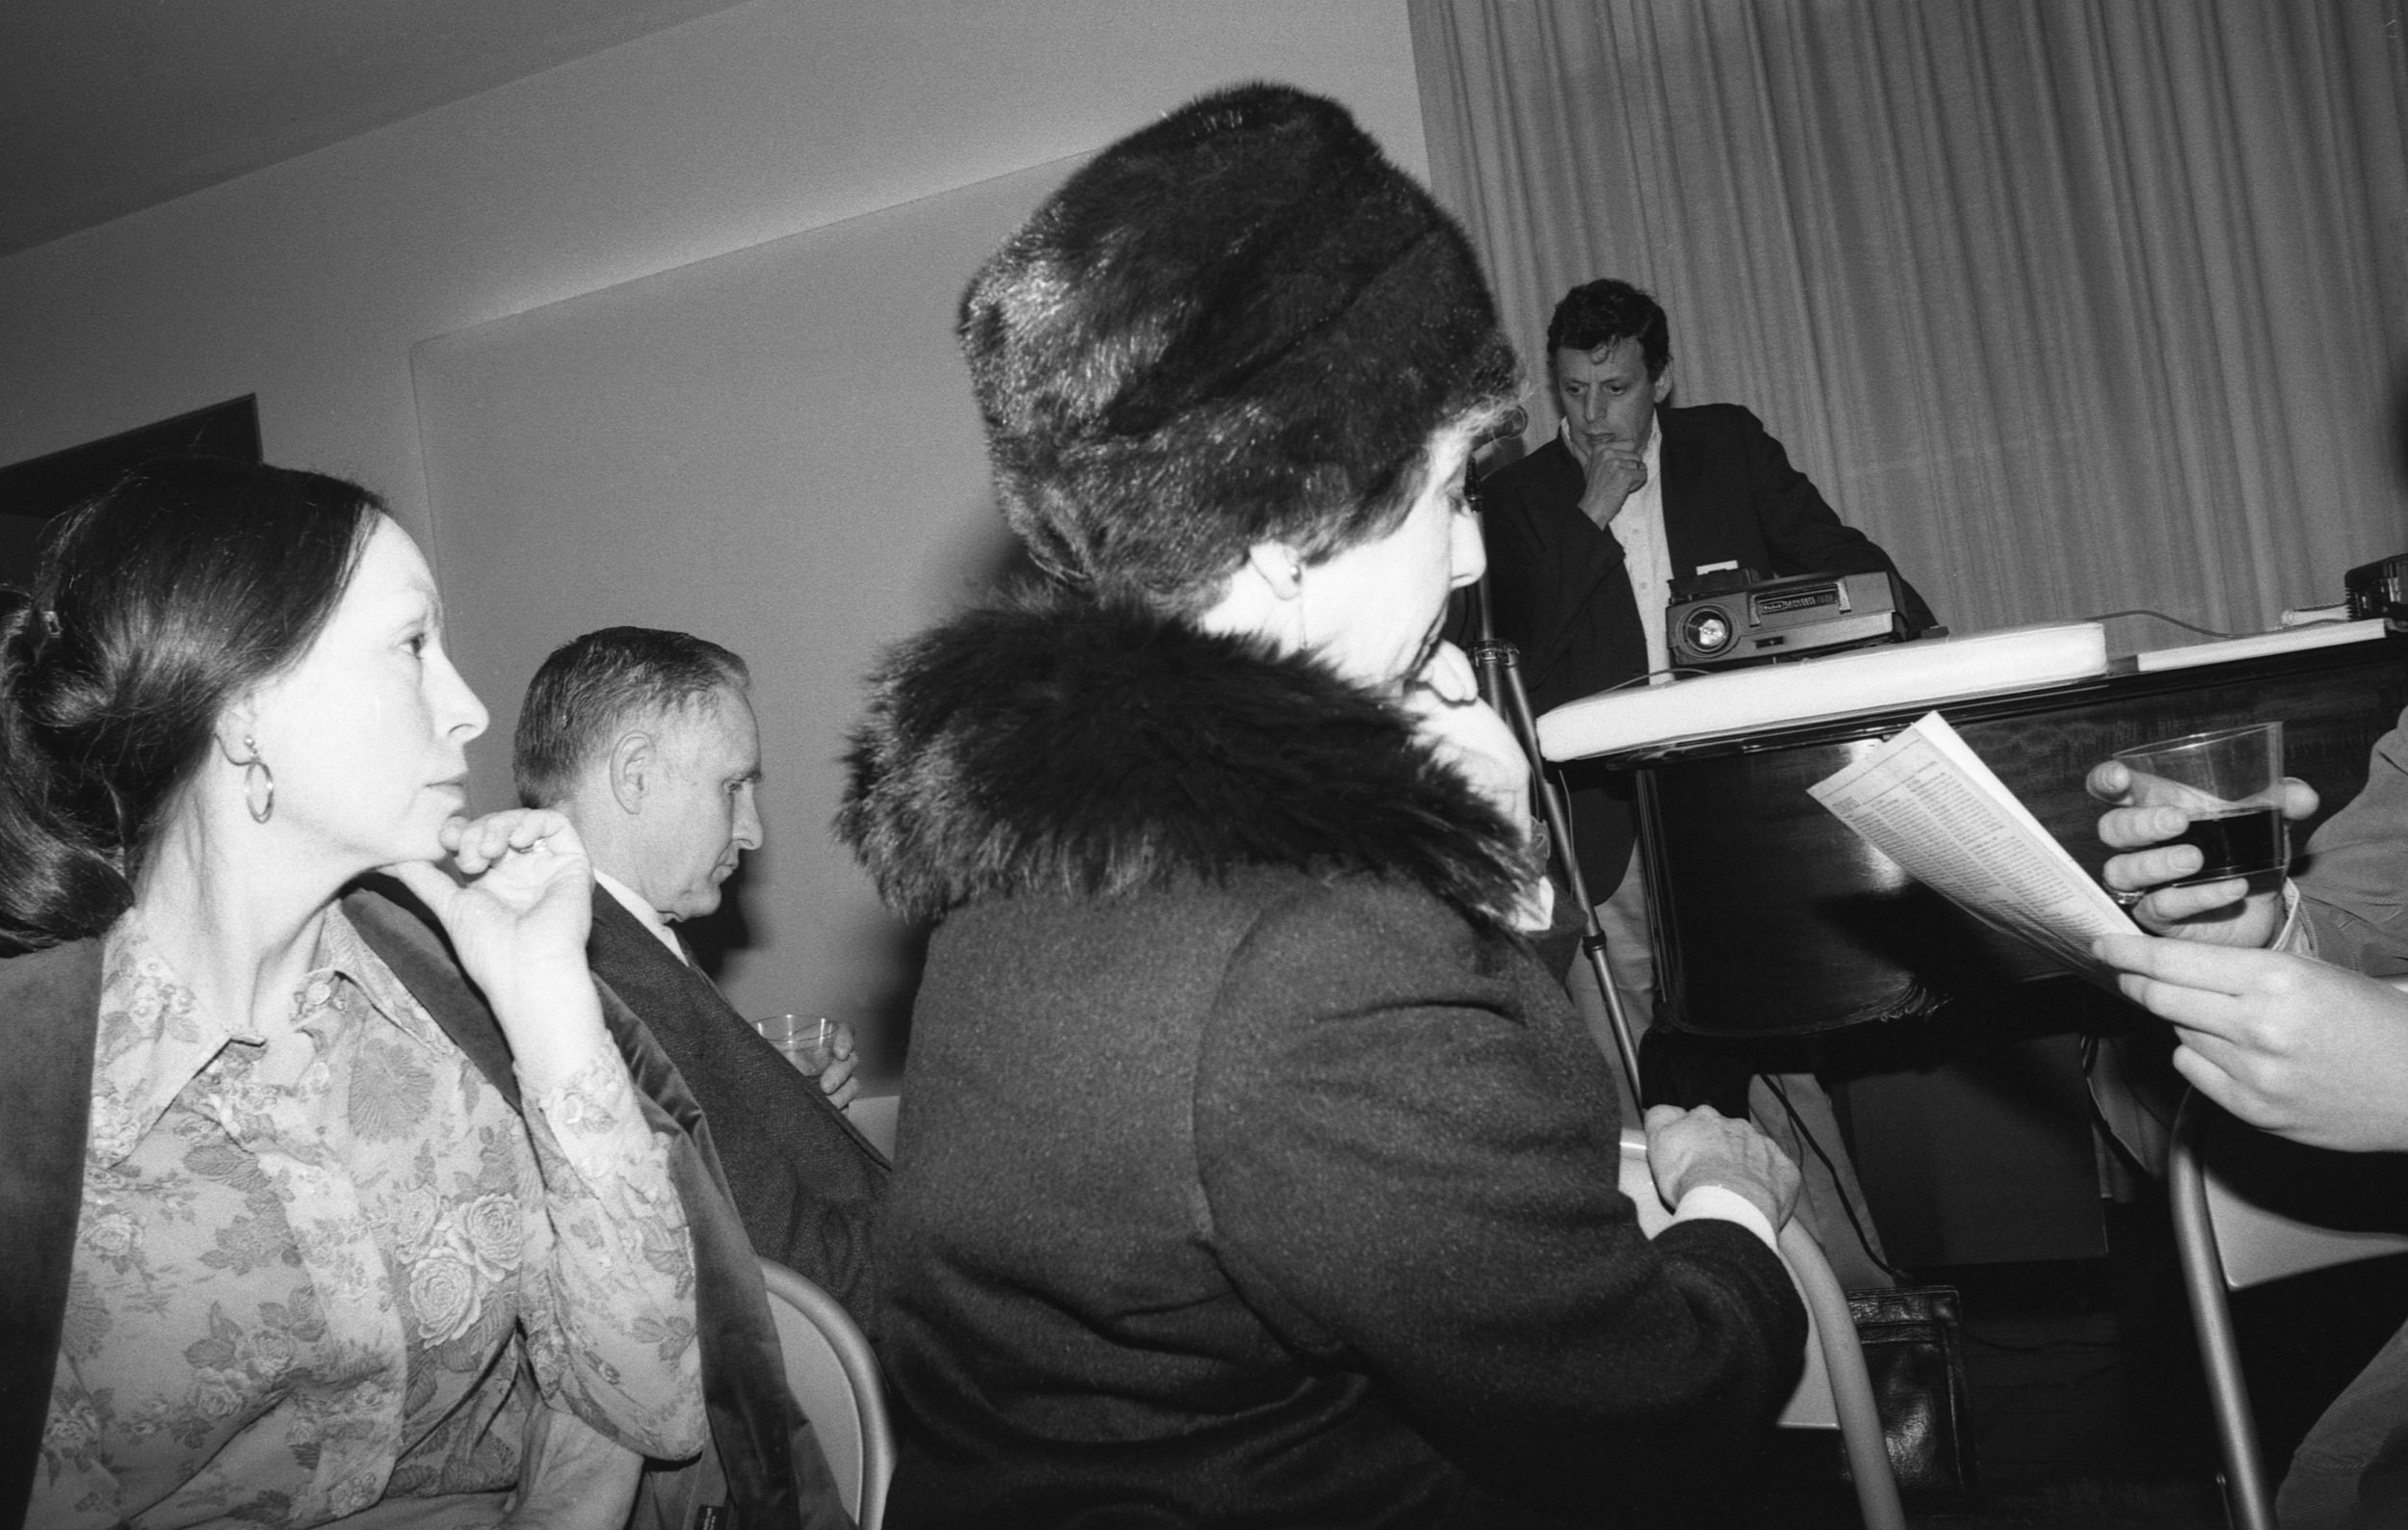 Philip Glass making a presentation at salon given by Betty Freeman, Los Angeles, 1981.